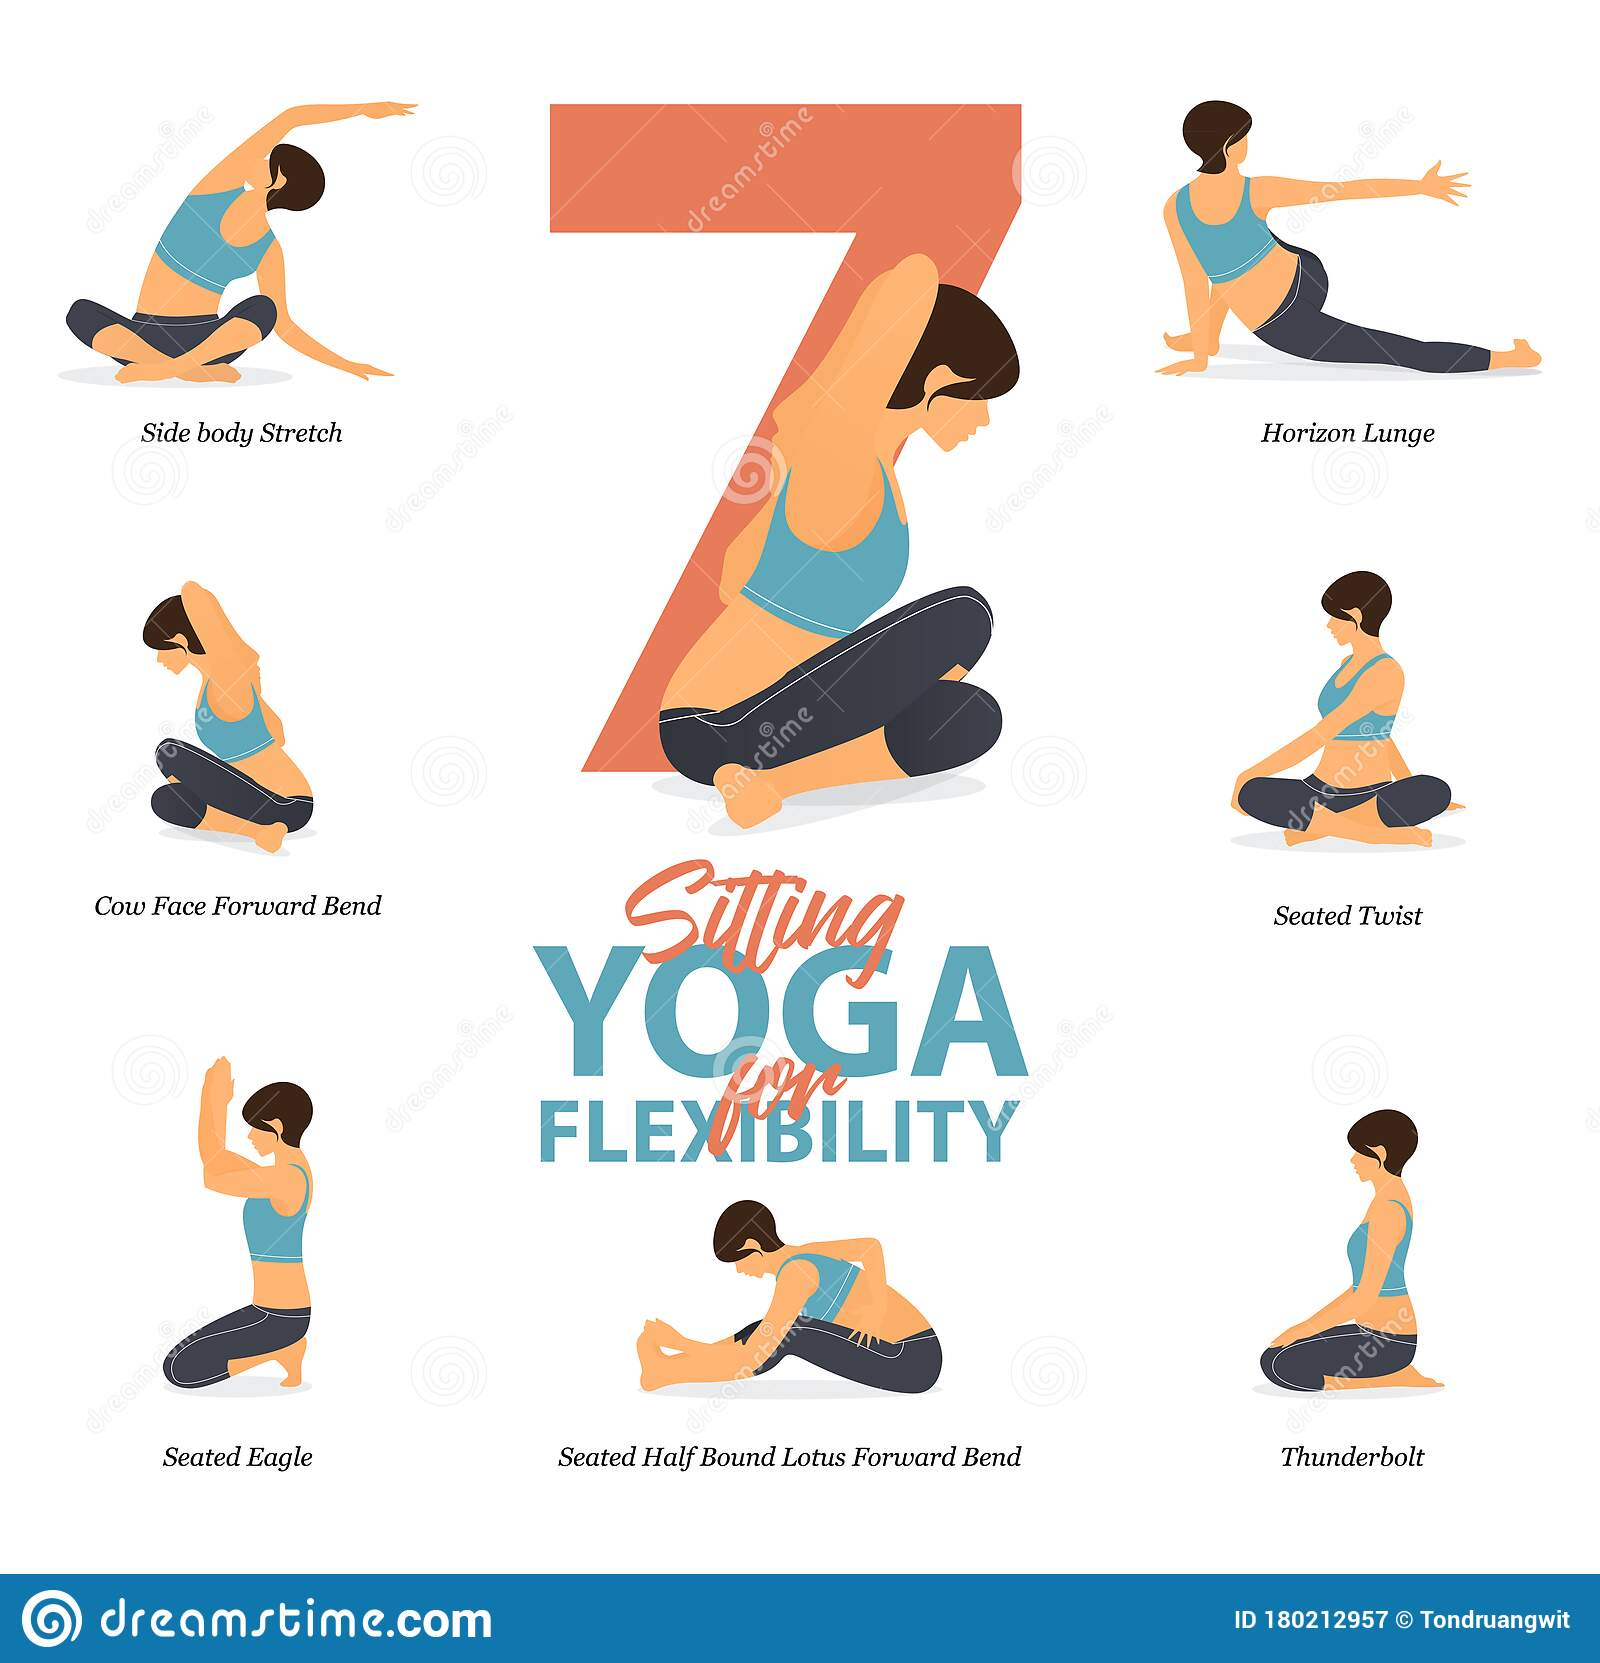 35 Sitting Yoga Poses For Easy Yoga At Home In Concept Of